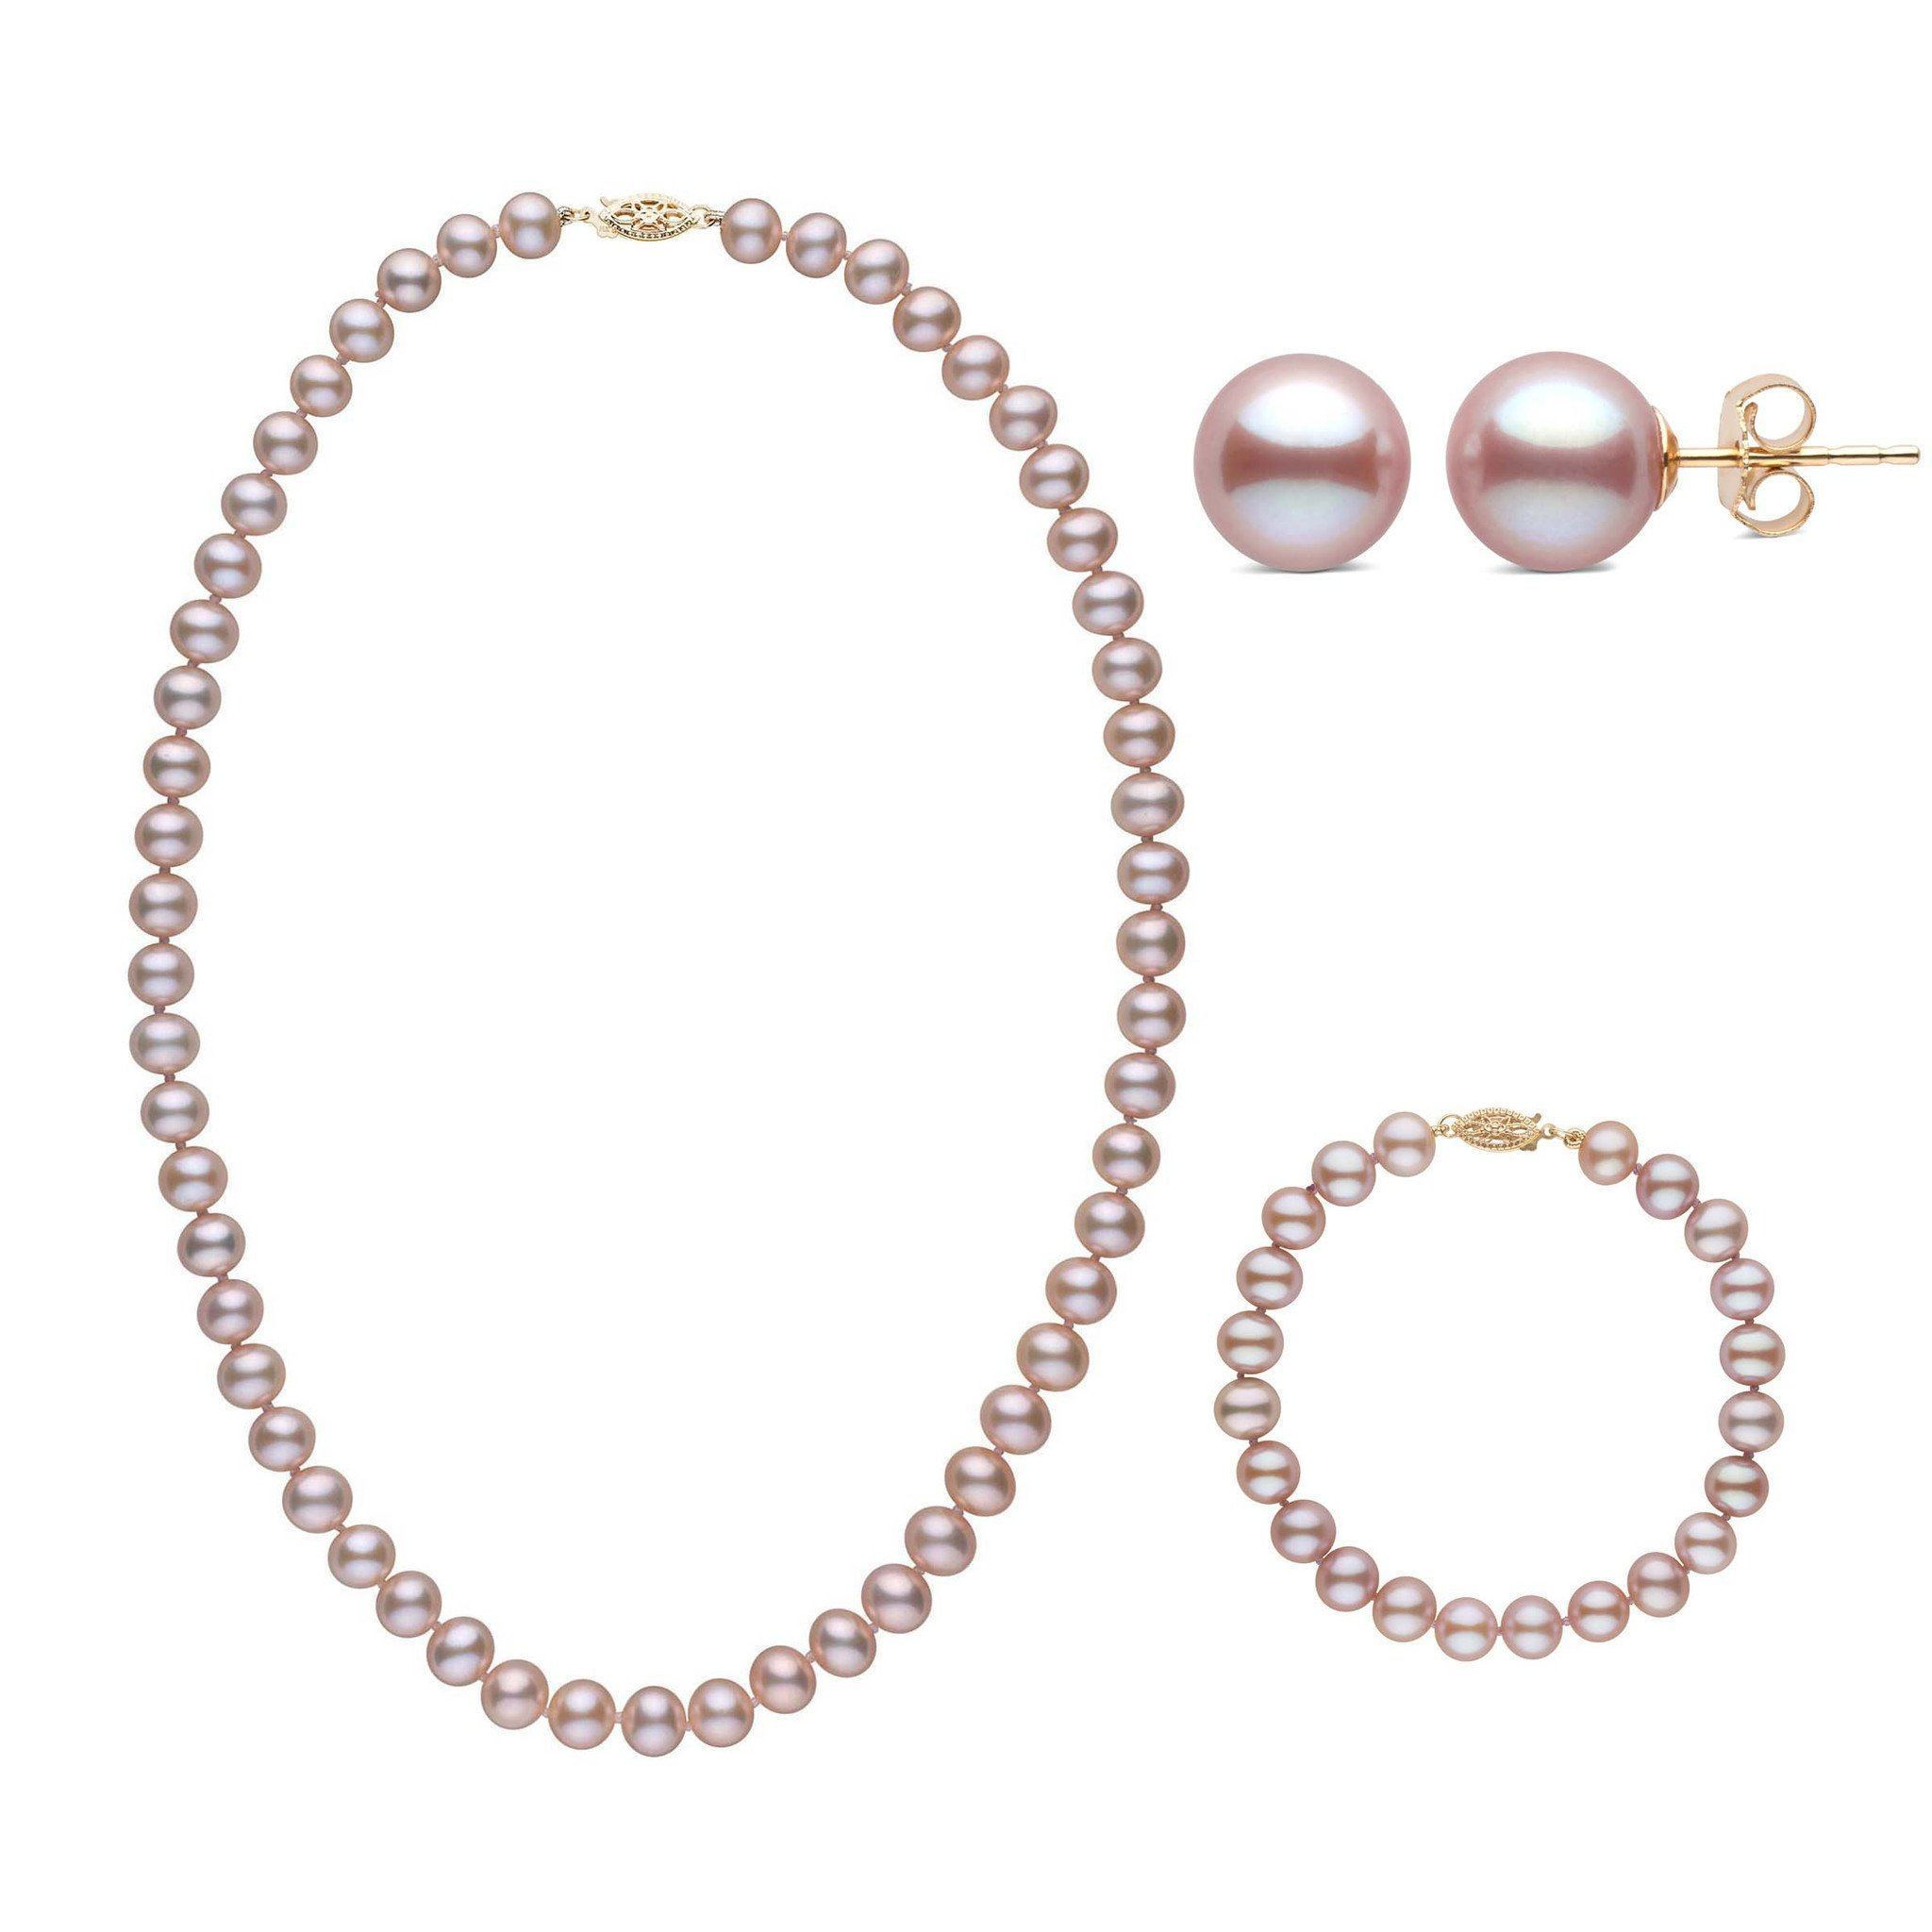 18 Inch 3 Piece Set of 7.5-8.0 mm AA+ Lavender Freshwater Pearls